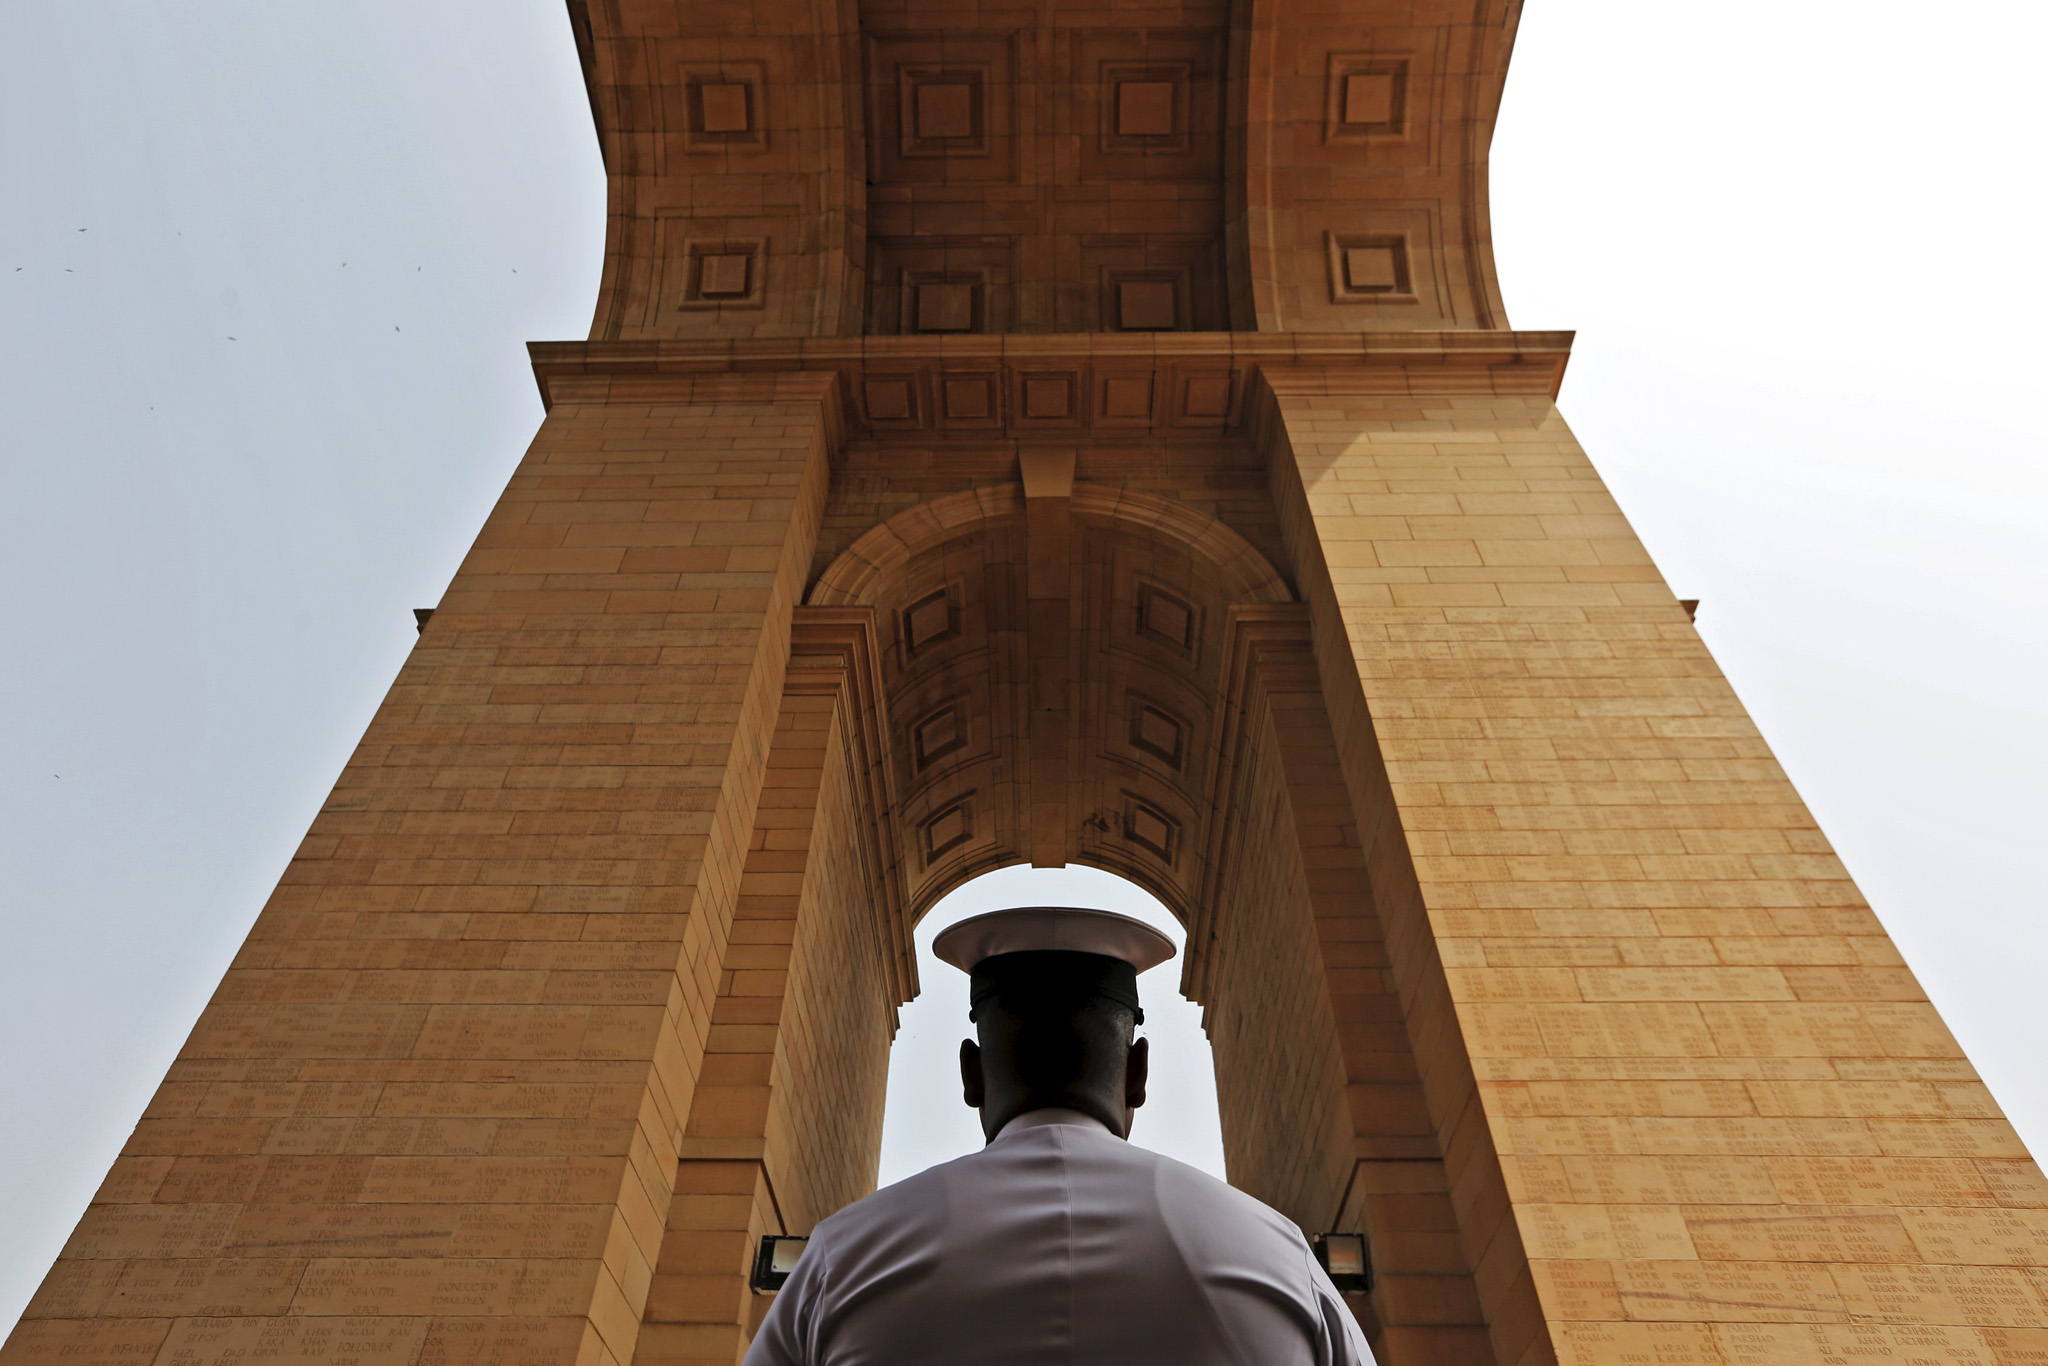 n Indian Naval soldier pays respect at the India Gate war memorial during a ceremony to commemorate 50th anniversary of a war between India and Pakistan, in New Delhi, India